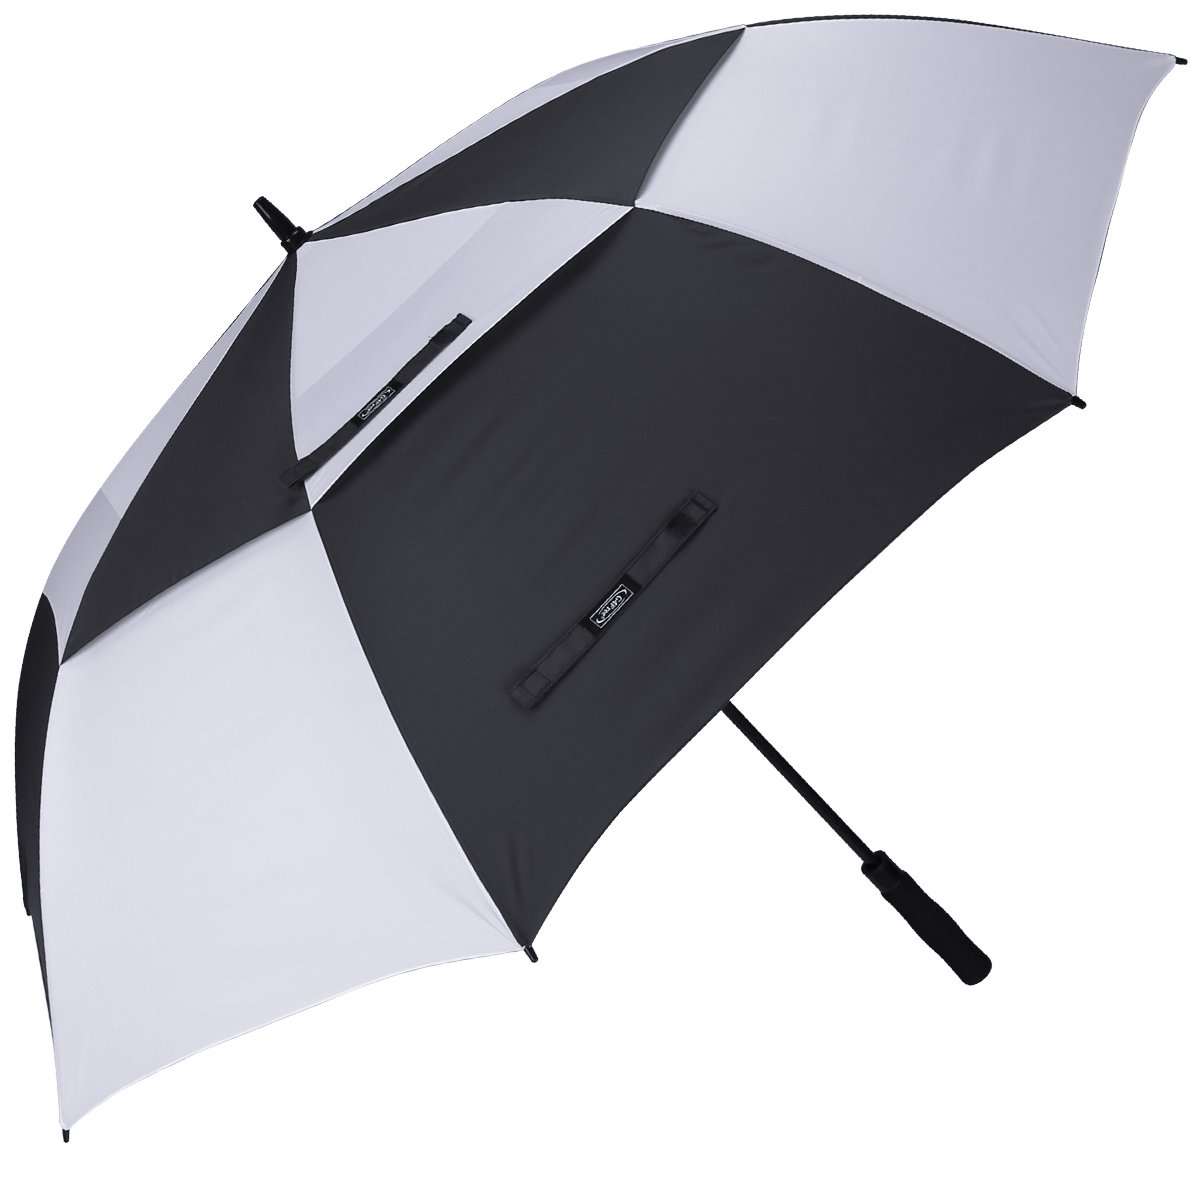 G4Free 62 Inch Automatic Open Golf Umbrella Extra Large Oversize Double Canopy Vented Windproof Waterproof Stick Umbrellas(Black/White) by G4Free